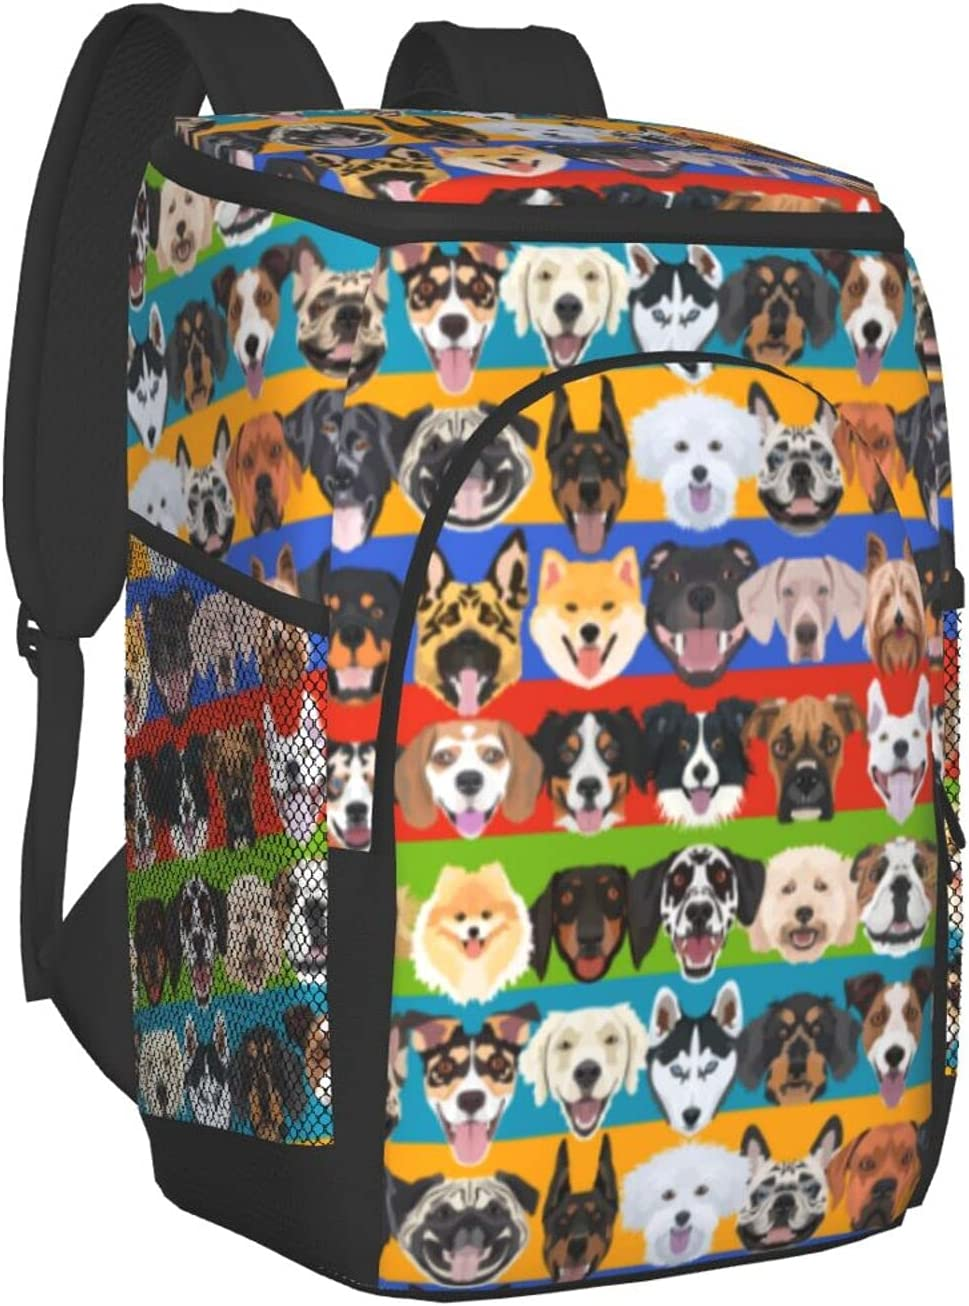 Our shop most popular Hand Painted Rabbit Feet Insulated Leakproof Cool Sacramento Mall Backpack Small